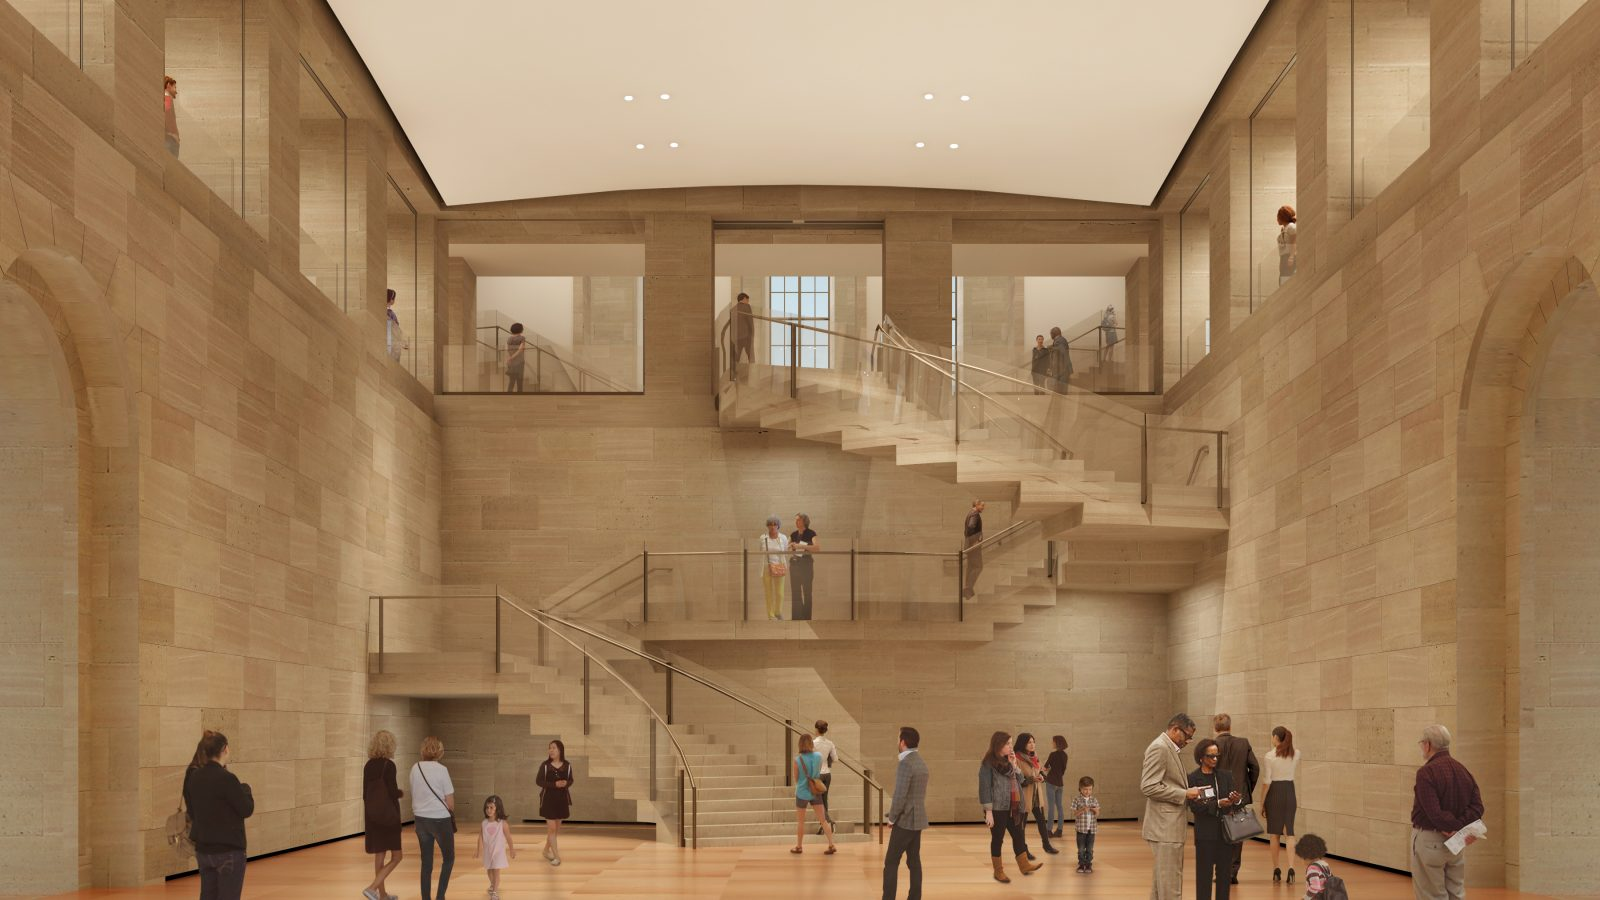 Sutton PR - Philadelphia Museum of Art - Architectural rendering by Gehry Partners